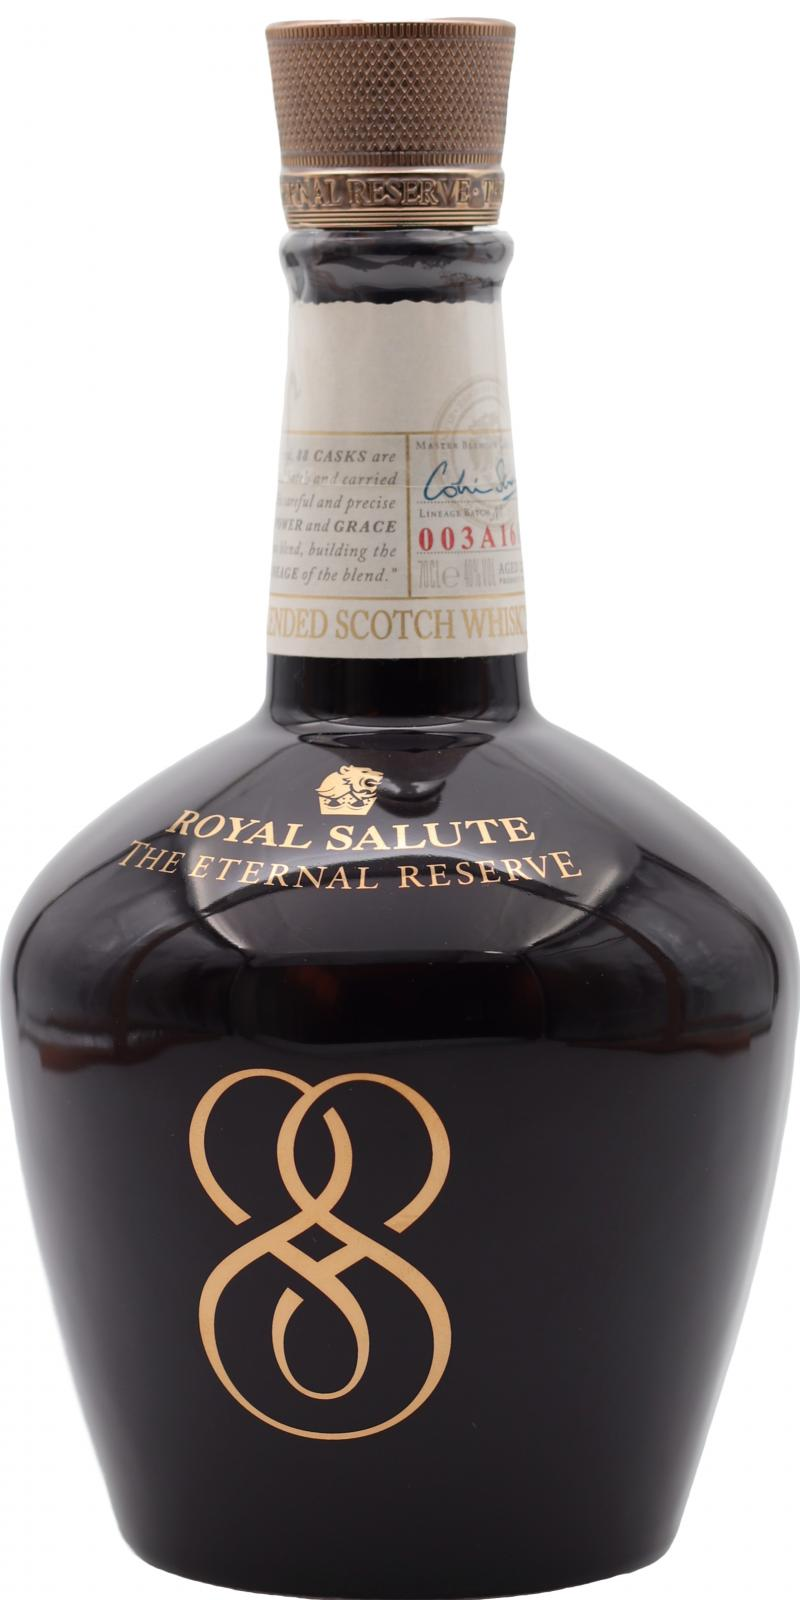 Royal Salute 21-year-old